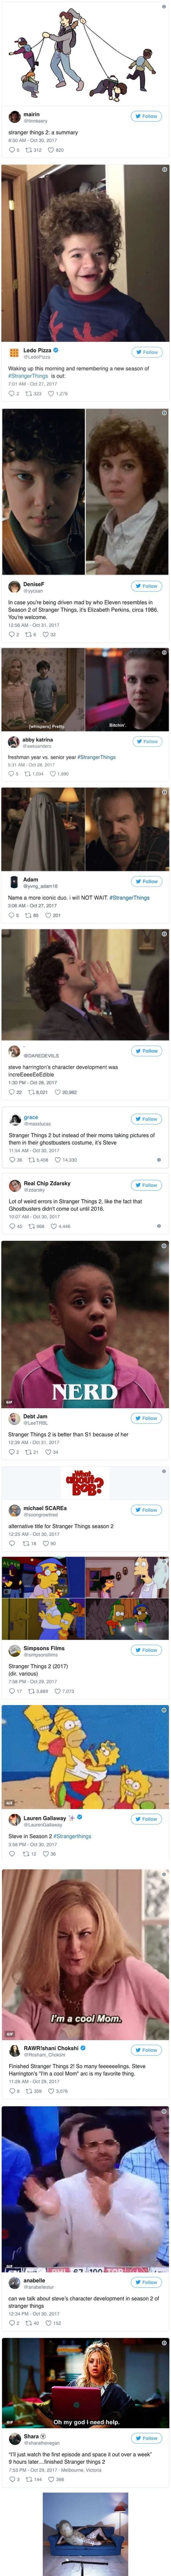 That one stupid person who didn't know about the original Ghostbusters deserves the stupidity award.